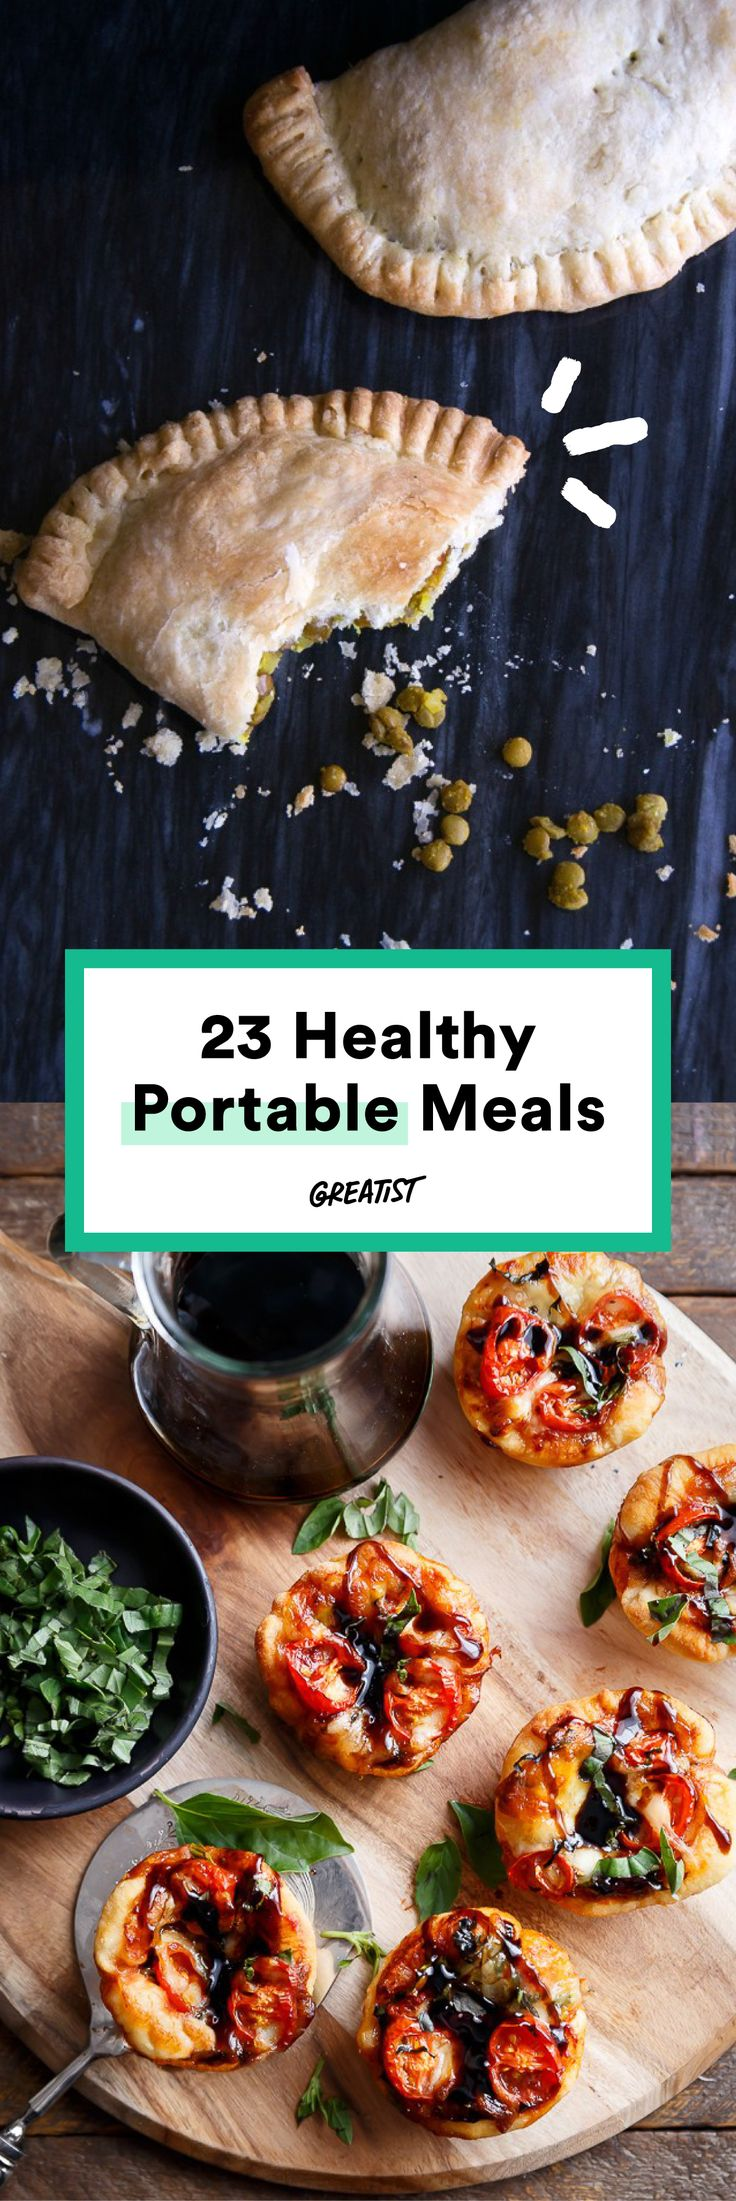 Who needs utensils? #healthy #portable #recipes http://greatist.com/eat/portable-meals-you-can-legit-eat-with-your-hands